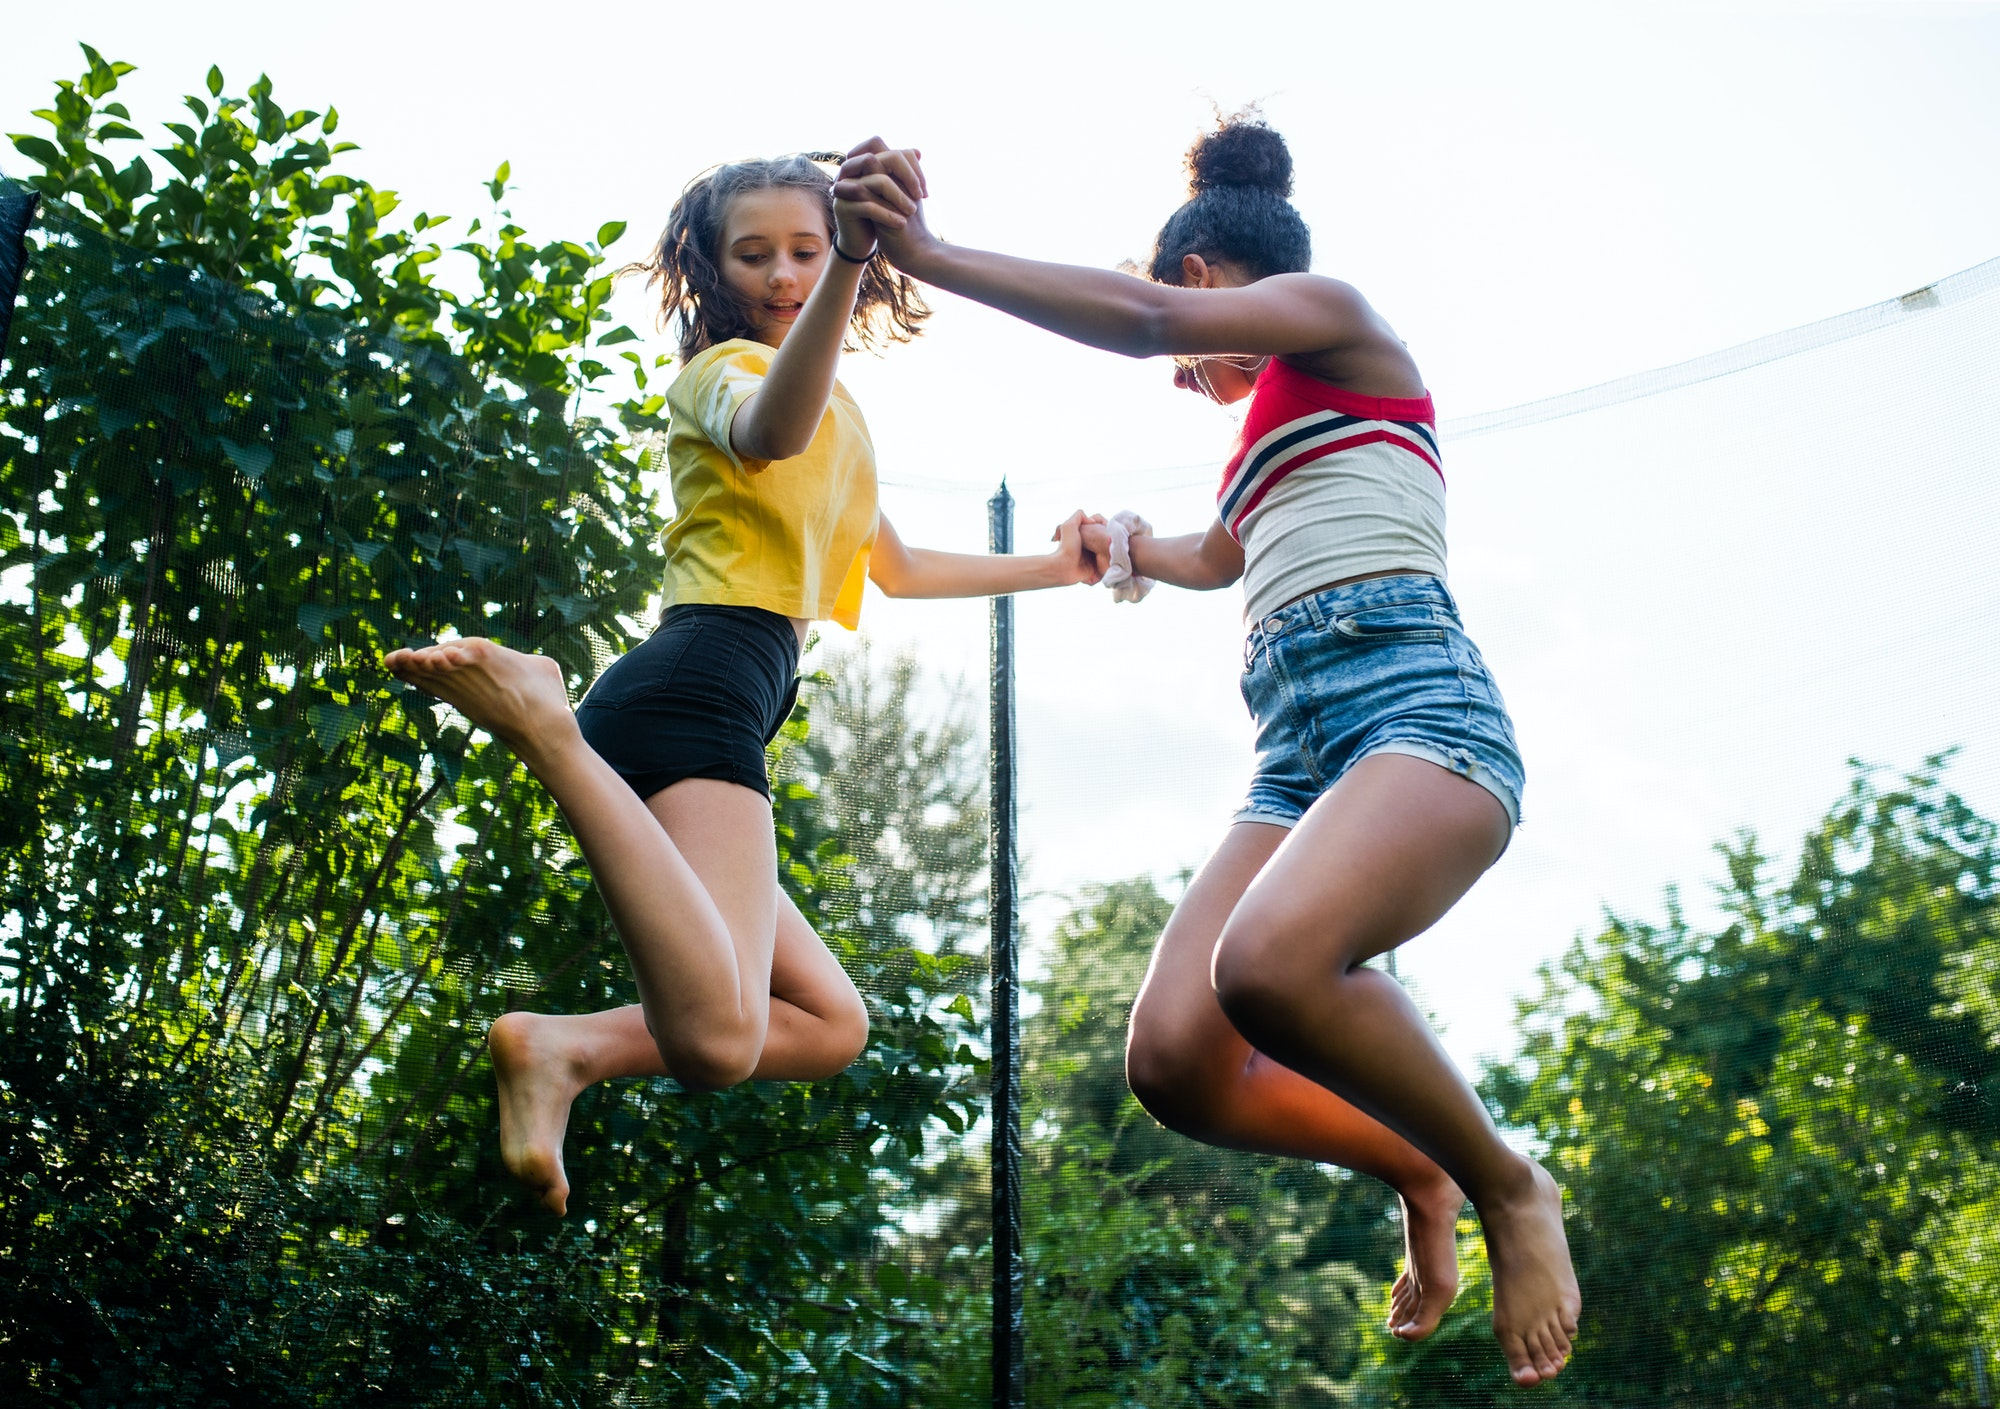 Low angle view of young teenager girls friends outdoors in garden, jumping on trampoline